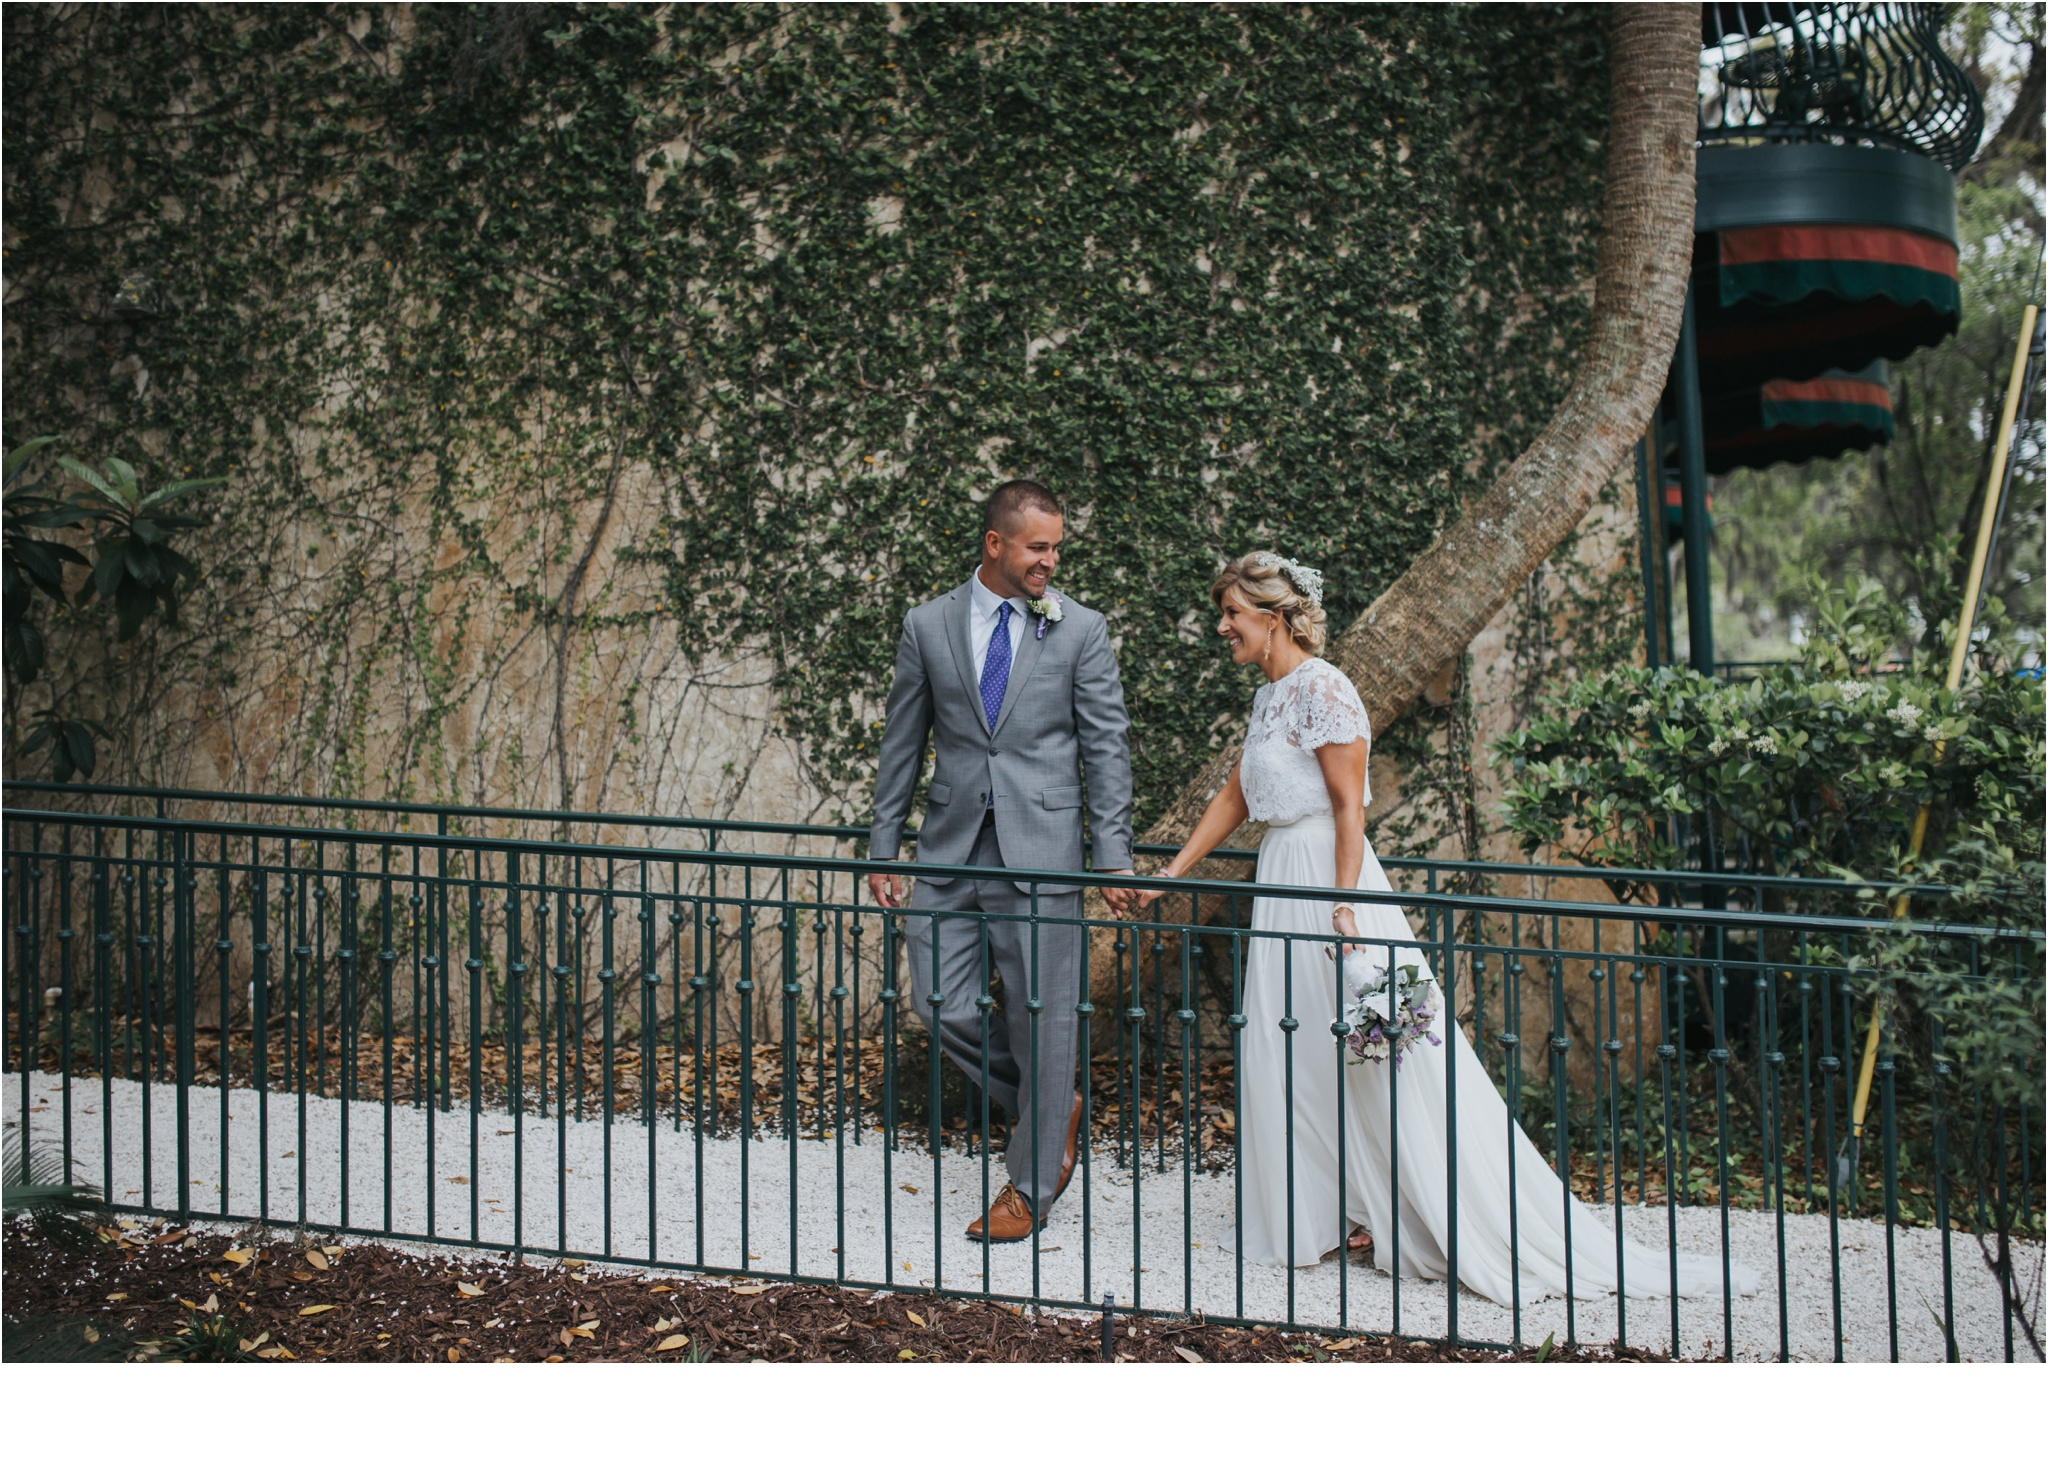 Rainey_Gregg_Photography_St._Simons_Island_Georgia_California_Wedding_Portrait_Photography_1526.jpg